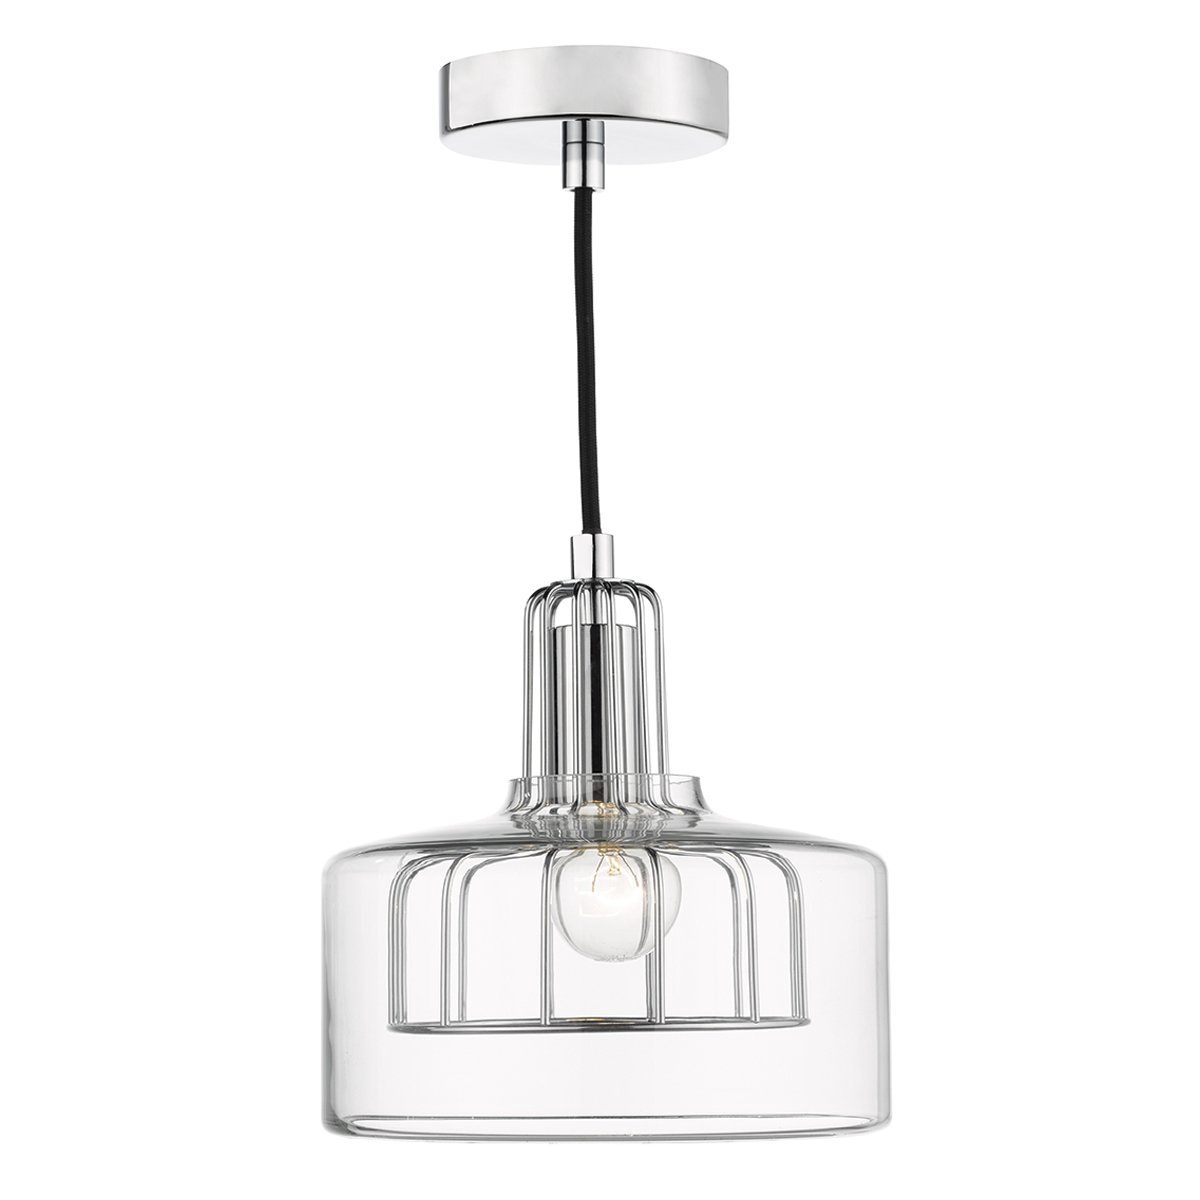 Dar DEF0150 Defoe 1 Light Lantern Pendant in Polished Chrome